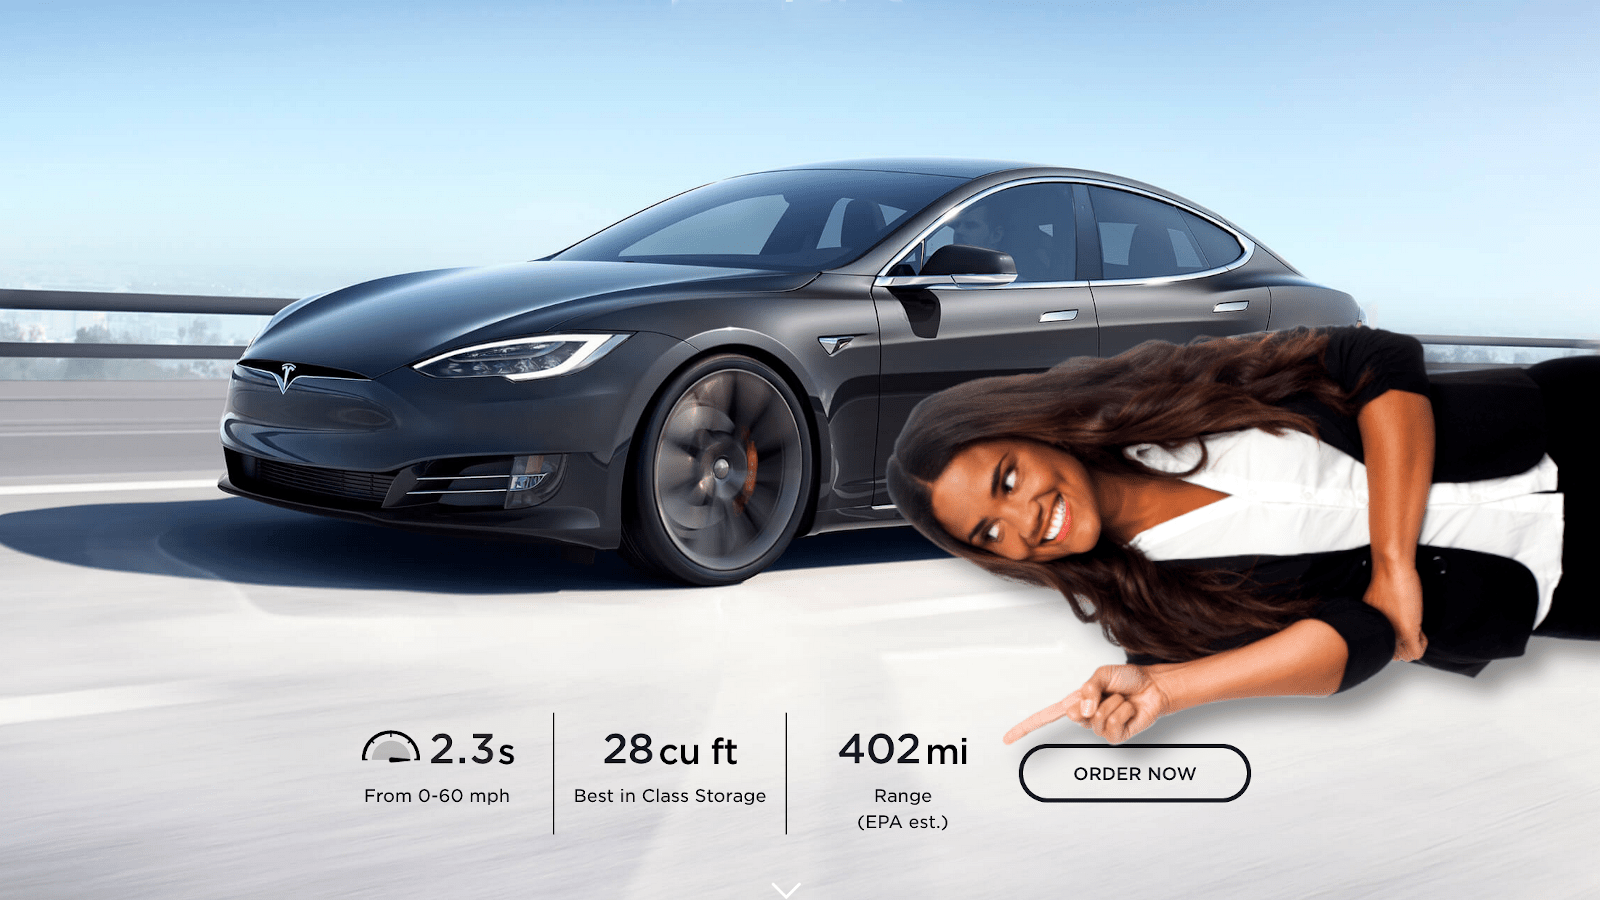 tesla, range, 400 miles, car, ev, epa, charger, supercharge, model s, long range, wheels